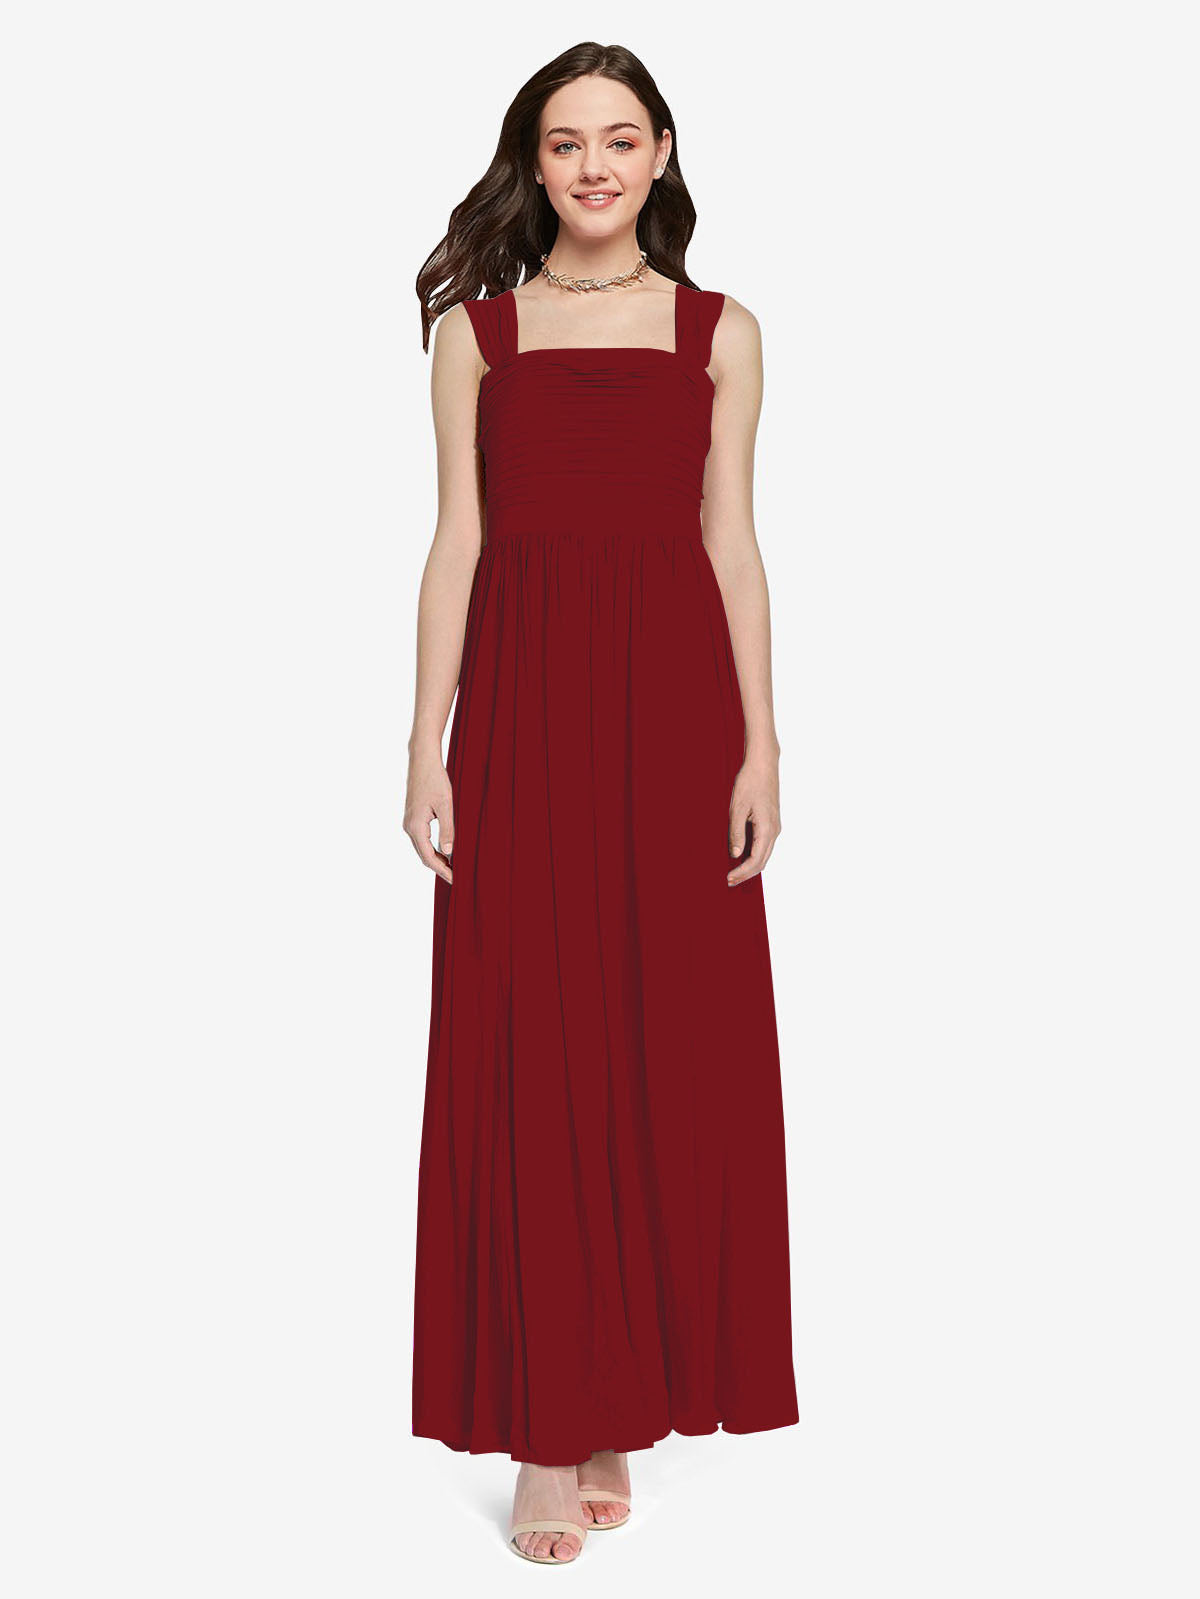 Long A-Line Square Sleeveless Burgundy Chiffon Bridesmaid Dress Aldridge